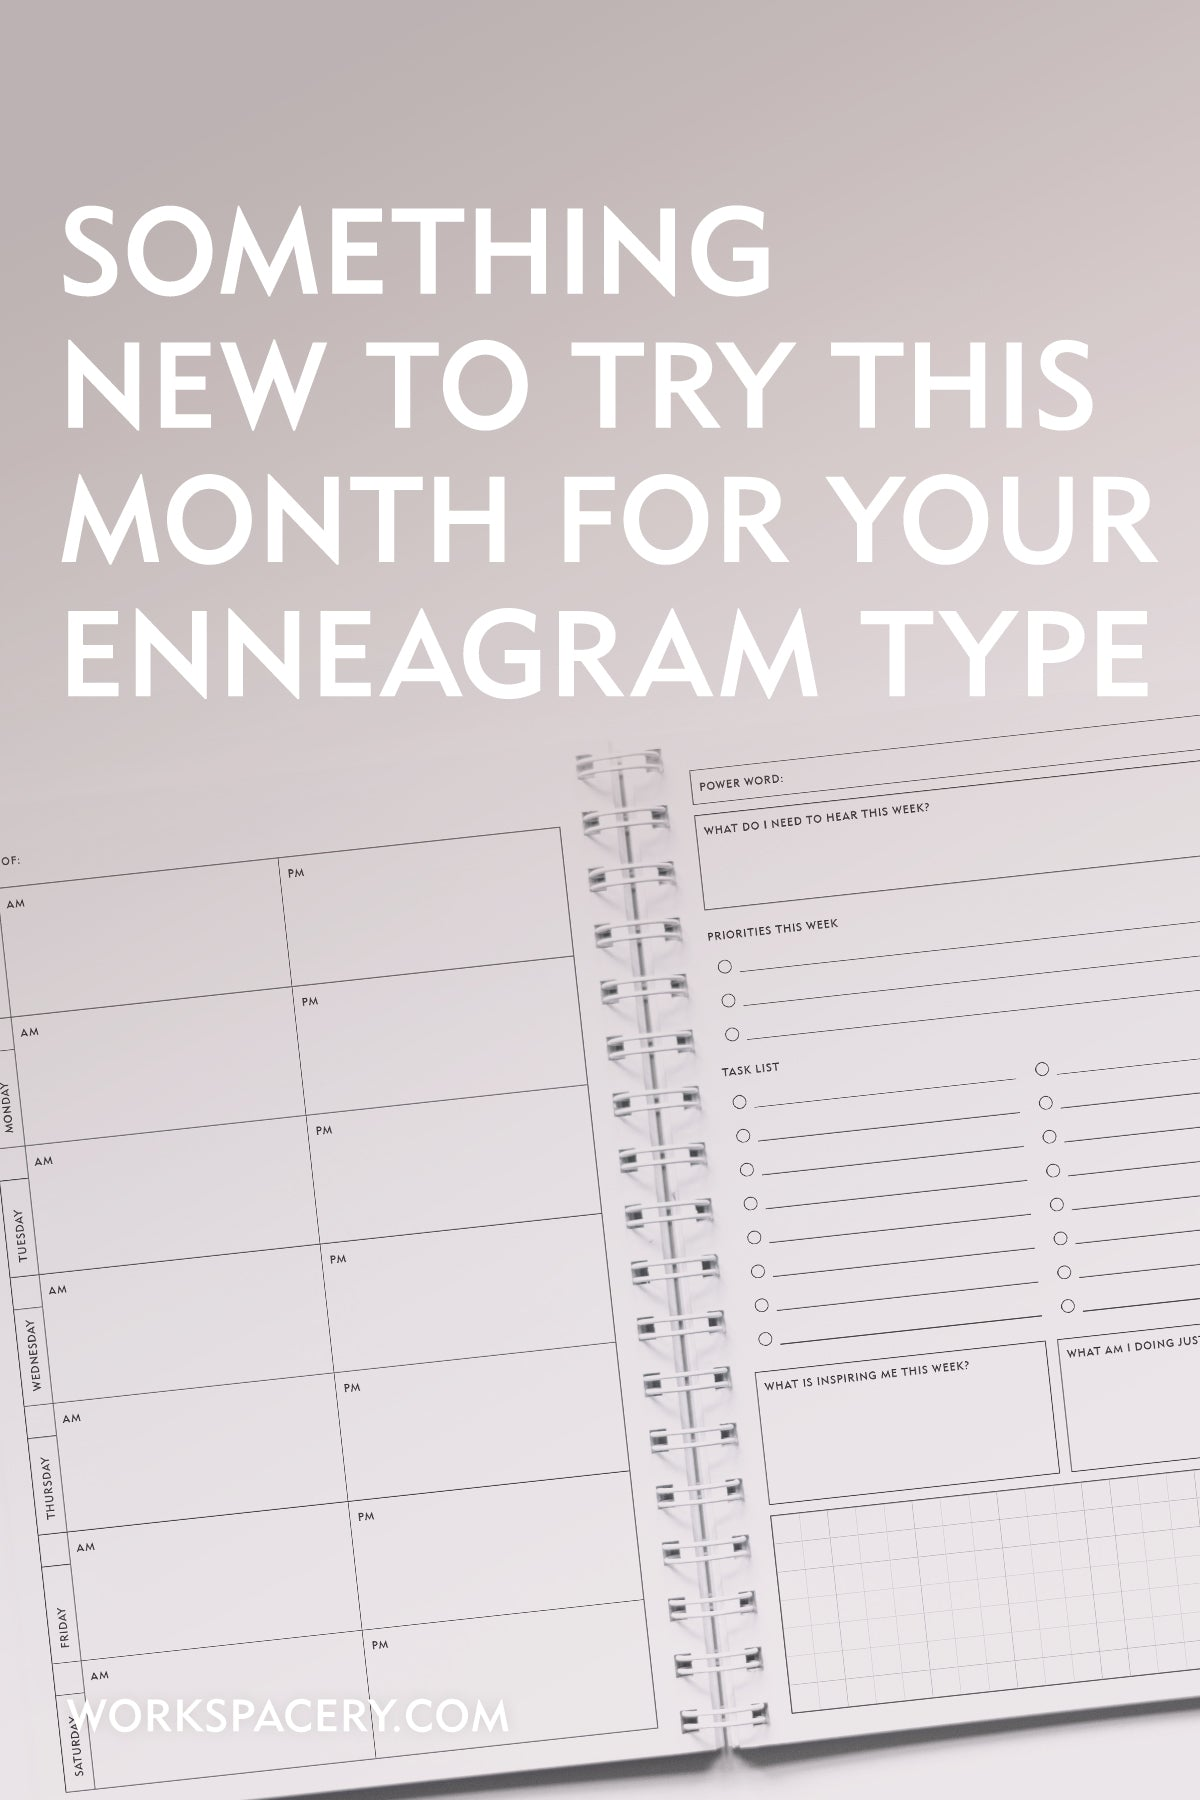 Something New to Try This Month for Your Enneagram Type